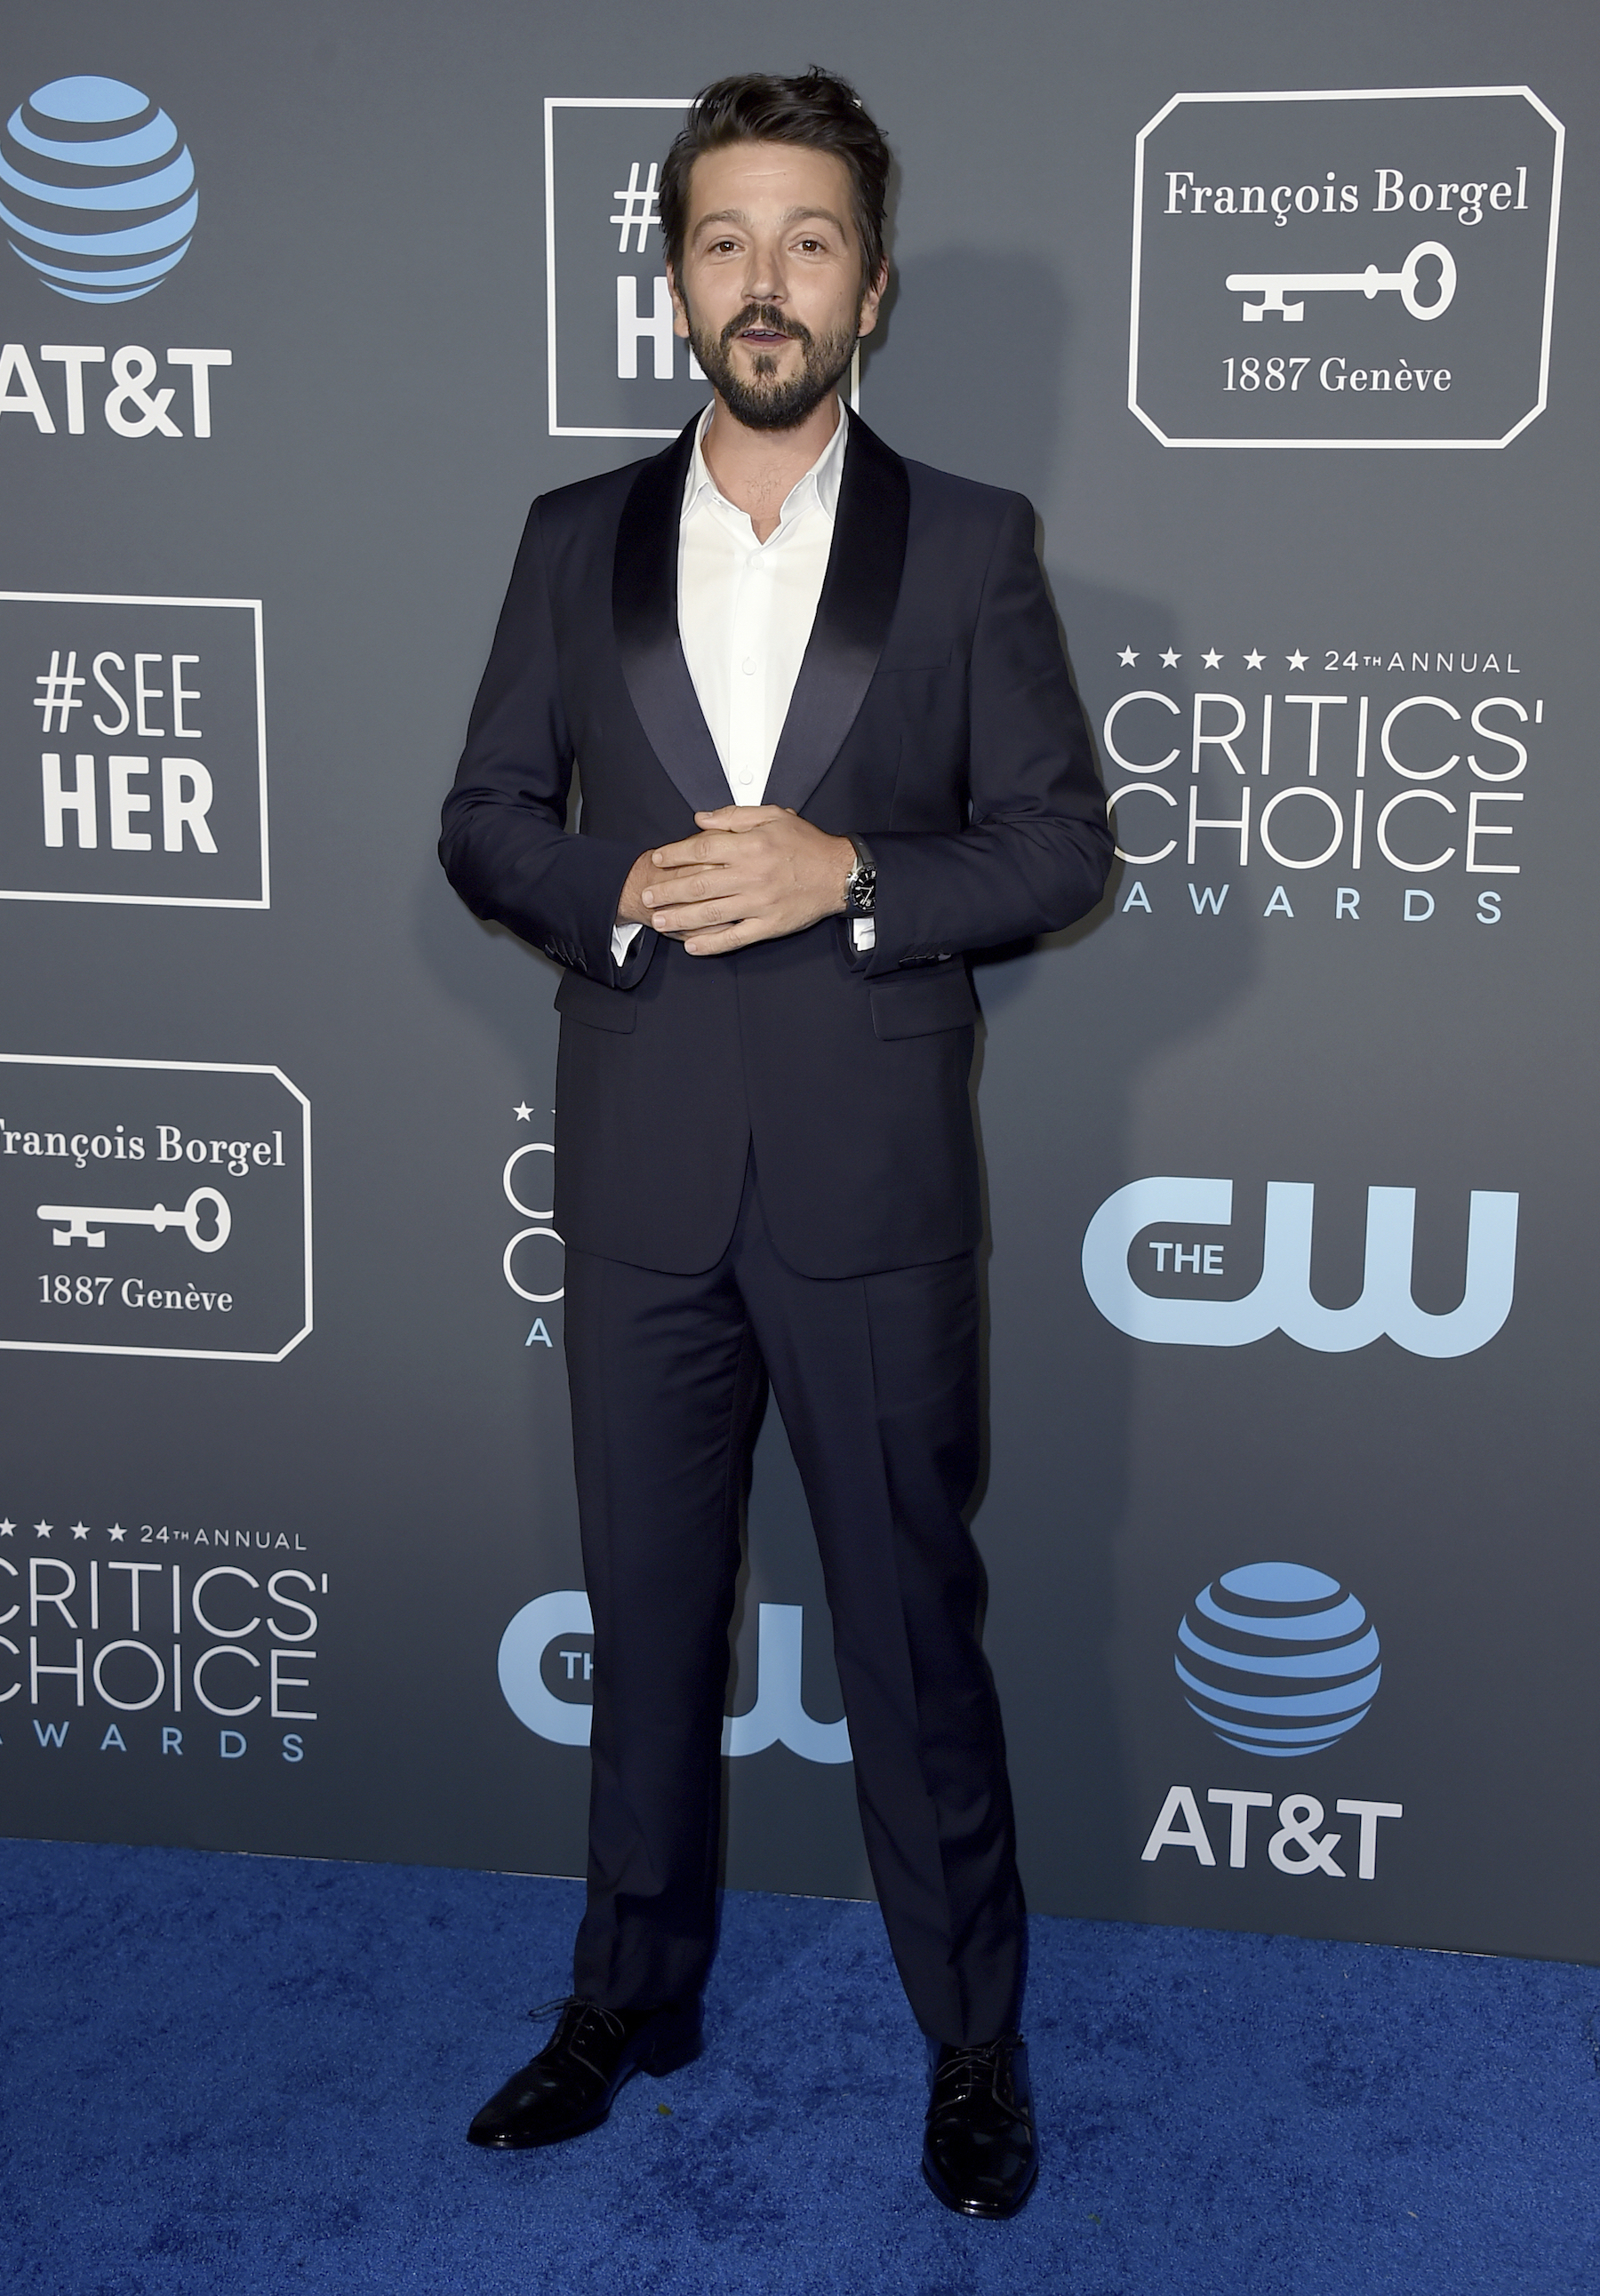 <div class='meta'><div class='origin-logo' data-origin='AP'></div><span class='caption-text' data-credit='Jordan Strauss/Invision/AP'>Diego Luna arrives at the 24th annual Critics' Choice Awards on Sunday, Jan. 13, 2019, at the Barker Hangar in Santa Monica, Calif.</span></div>